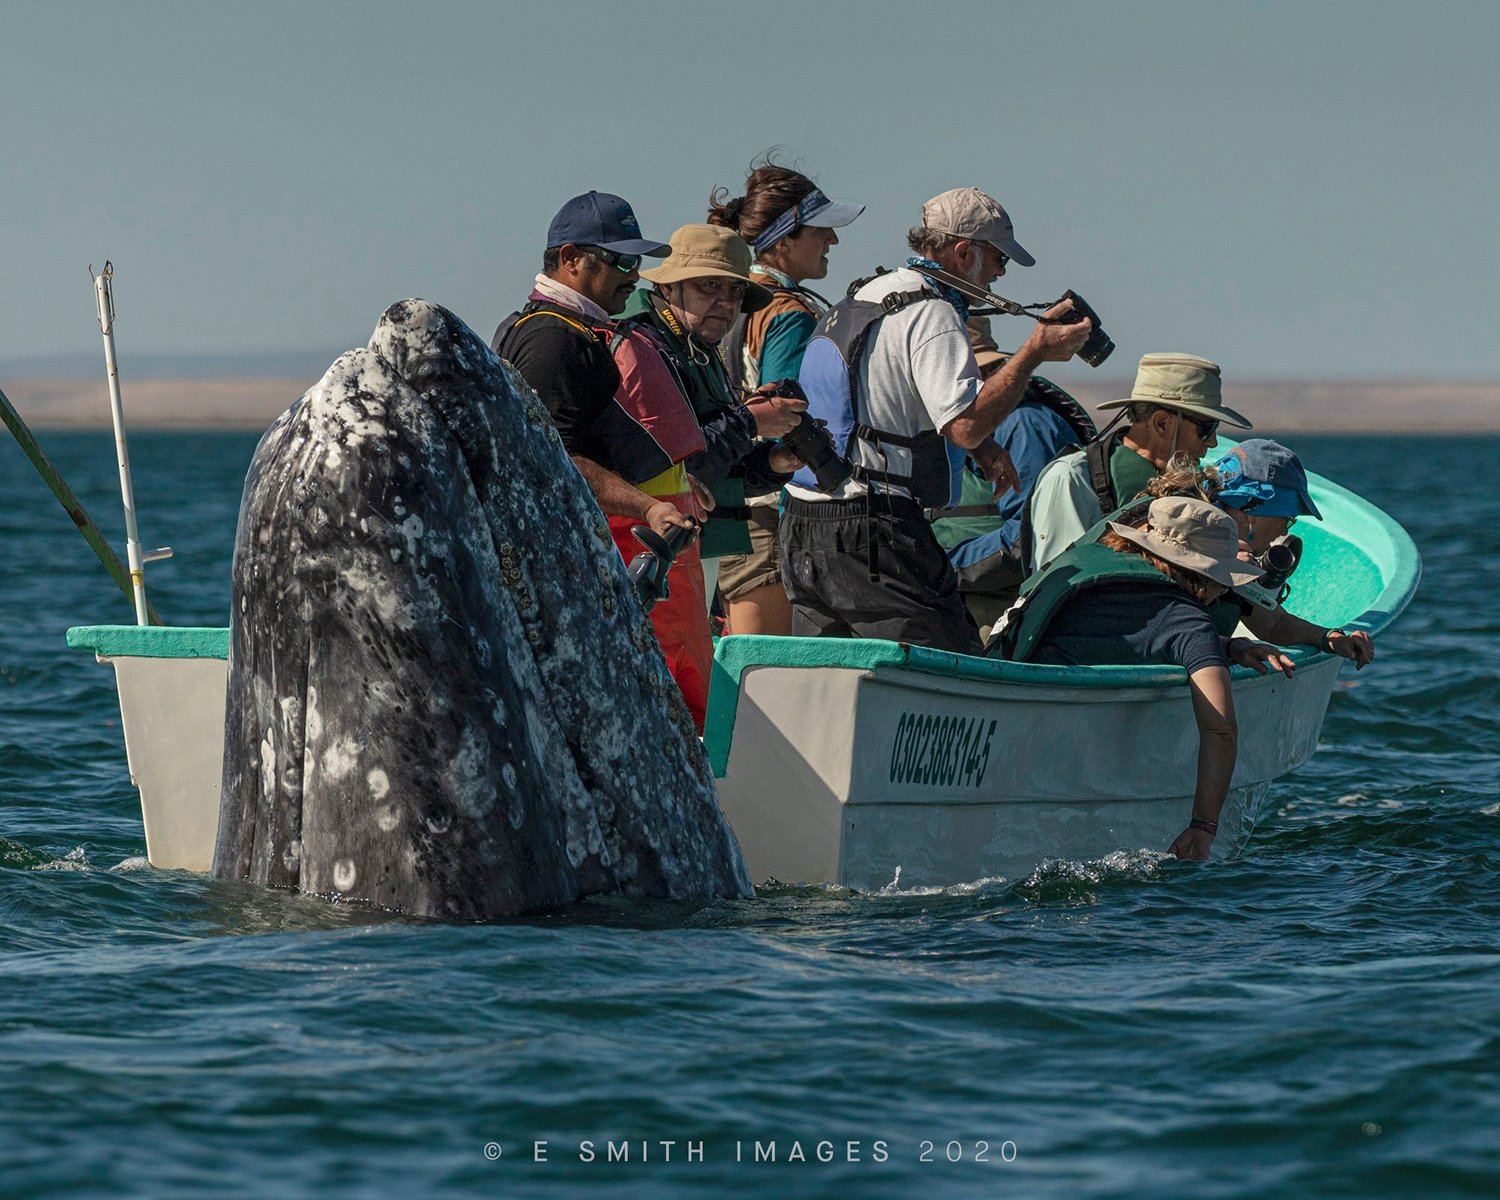 How I Made It: The Story Behind Eric Smith's Surprising Whale Photo